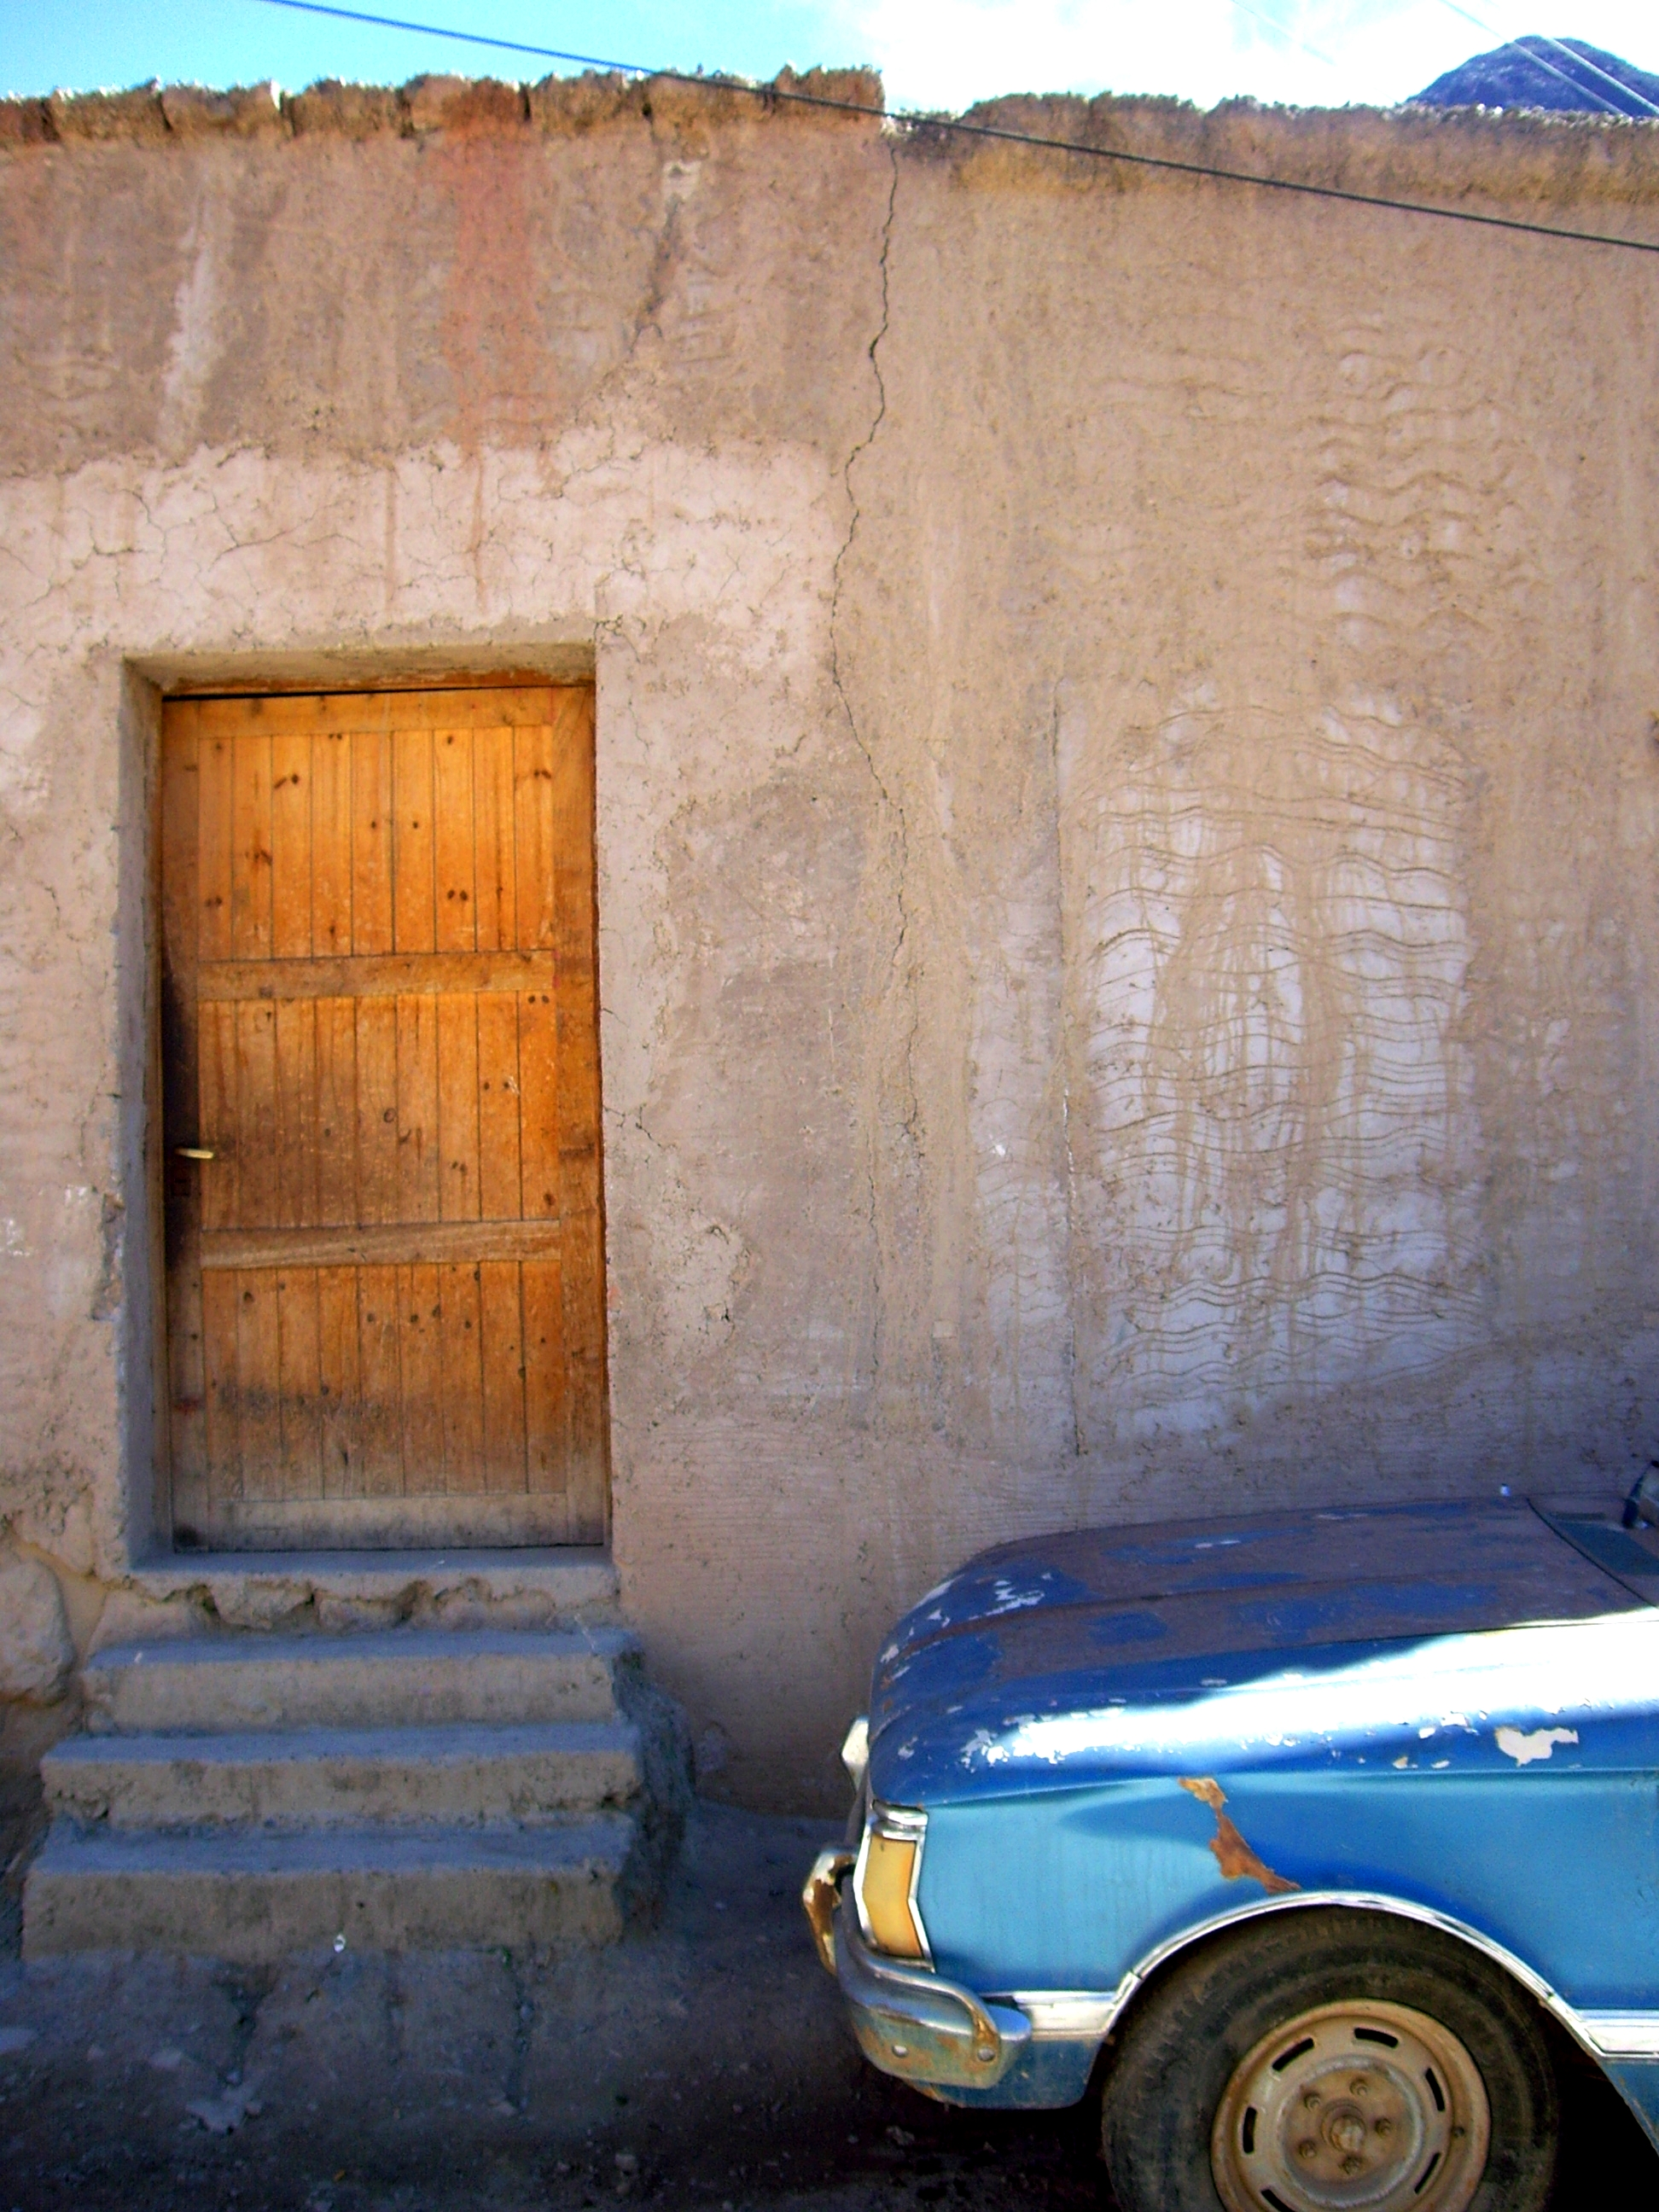 Car and window, Purmamarca, Argentina